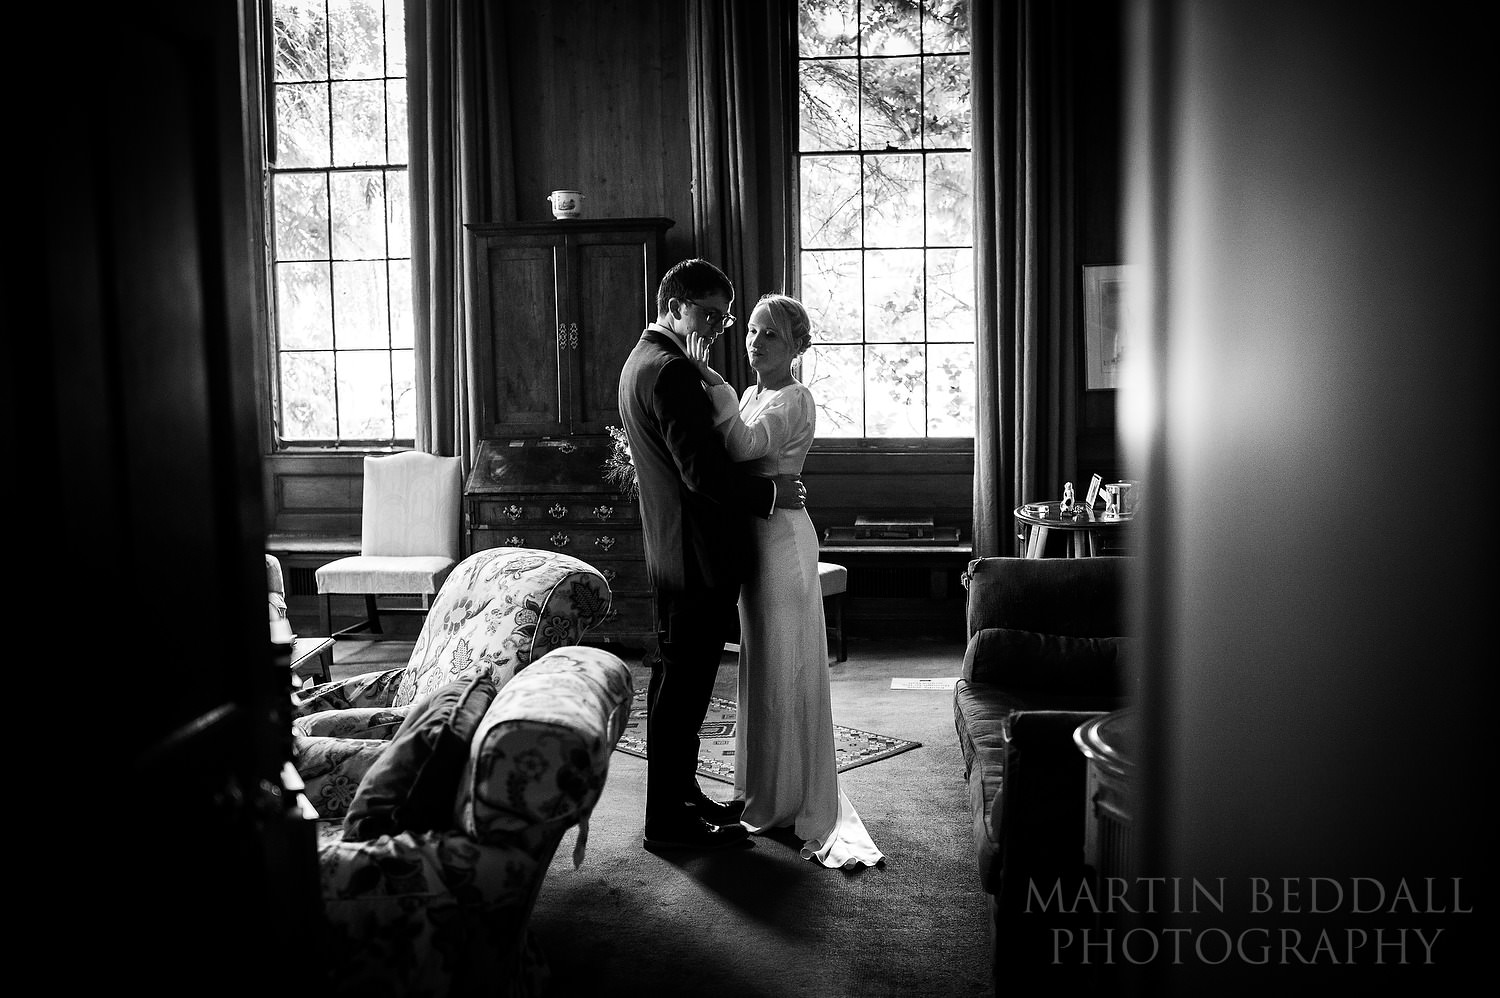 Moments after the wedding ceremony